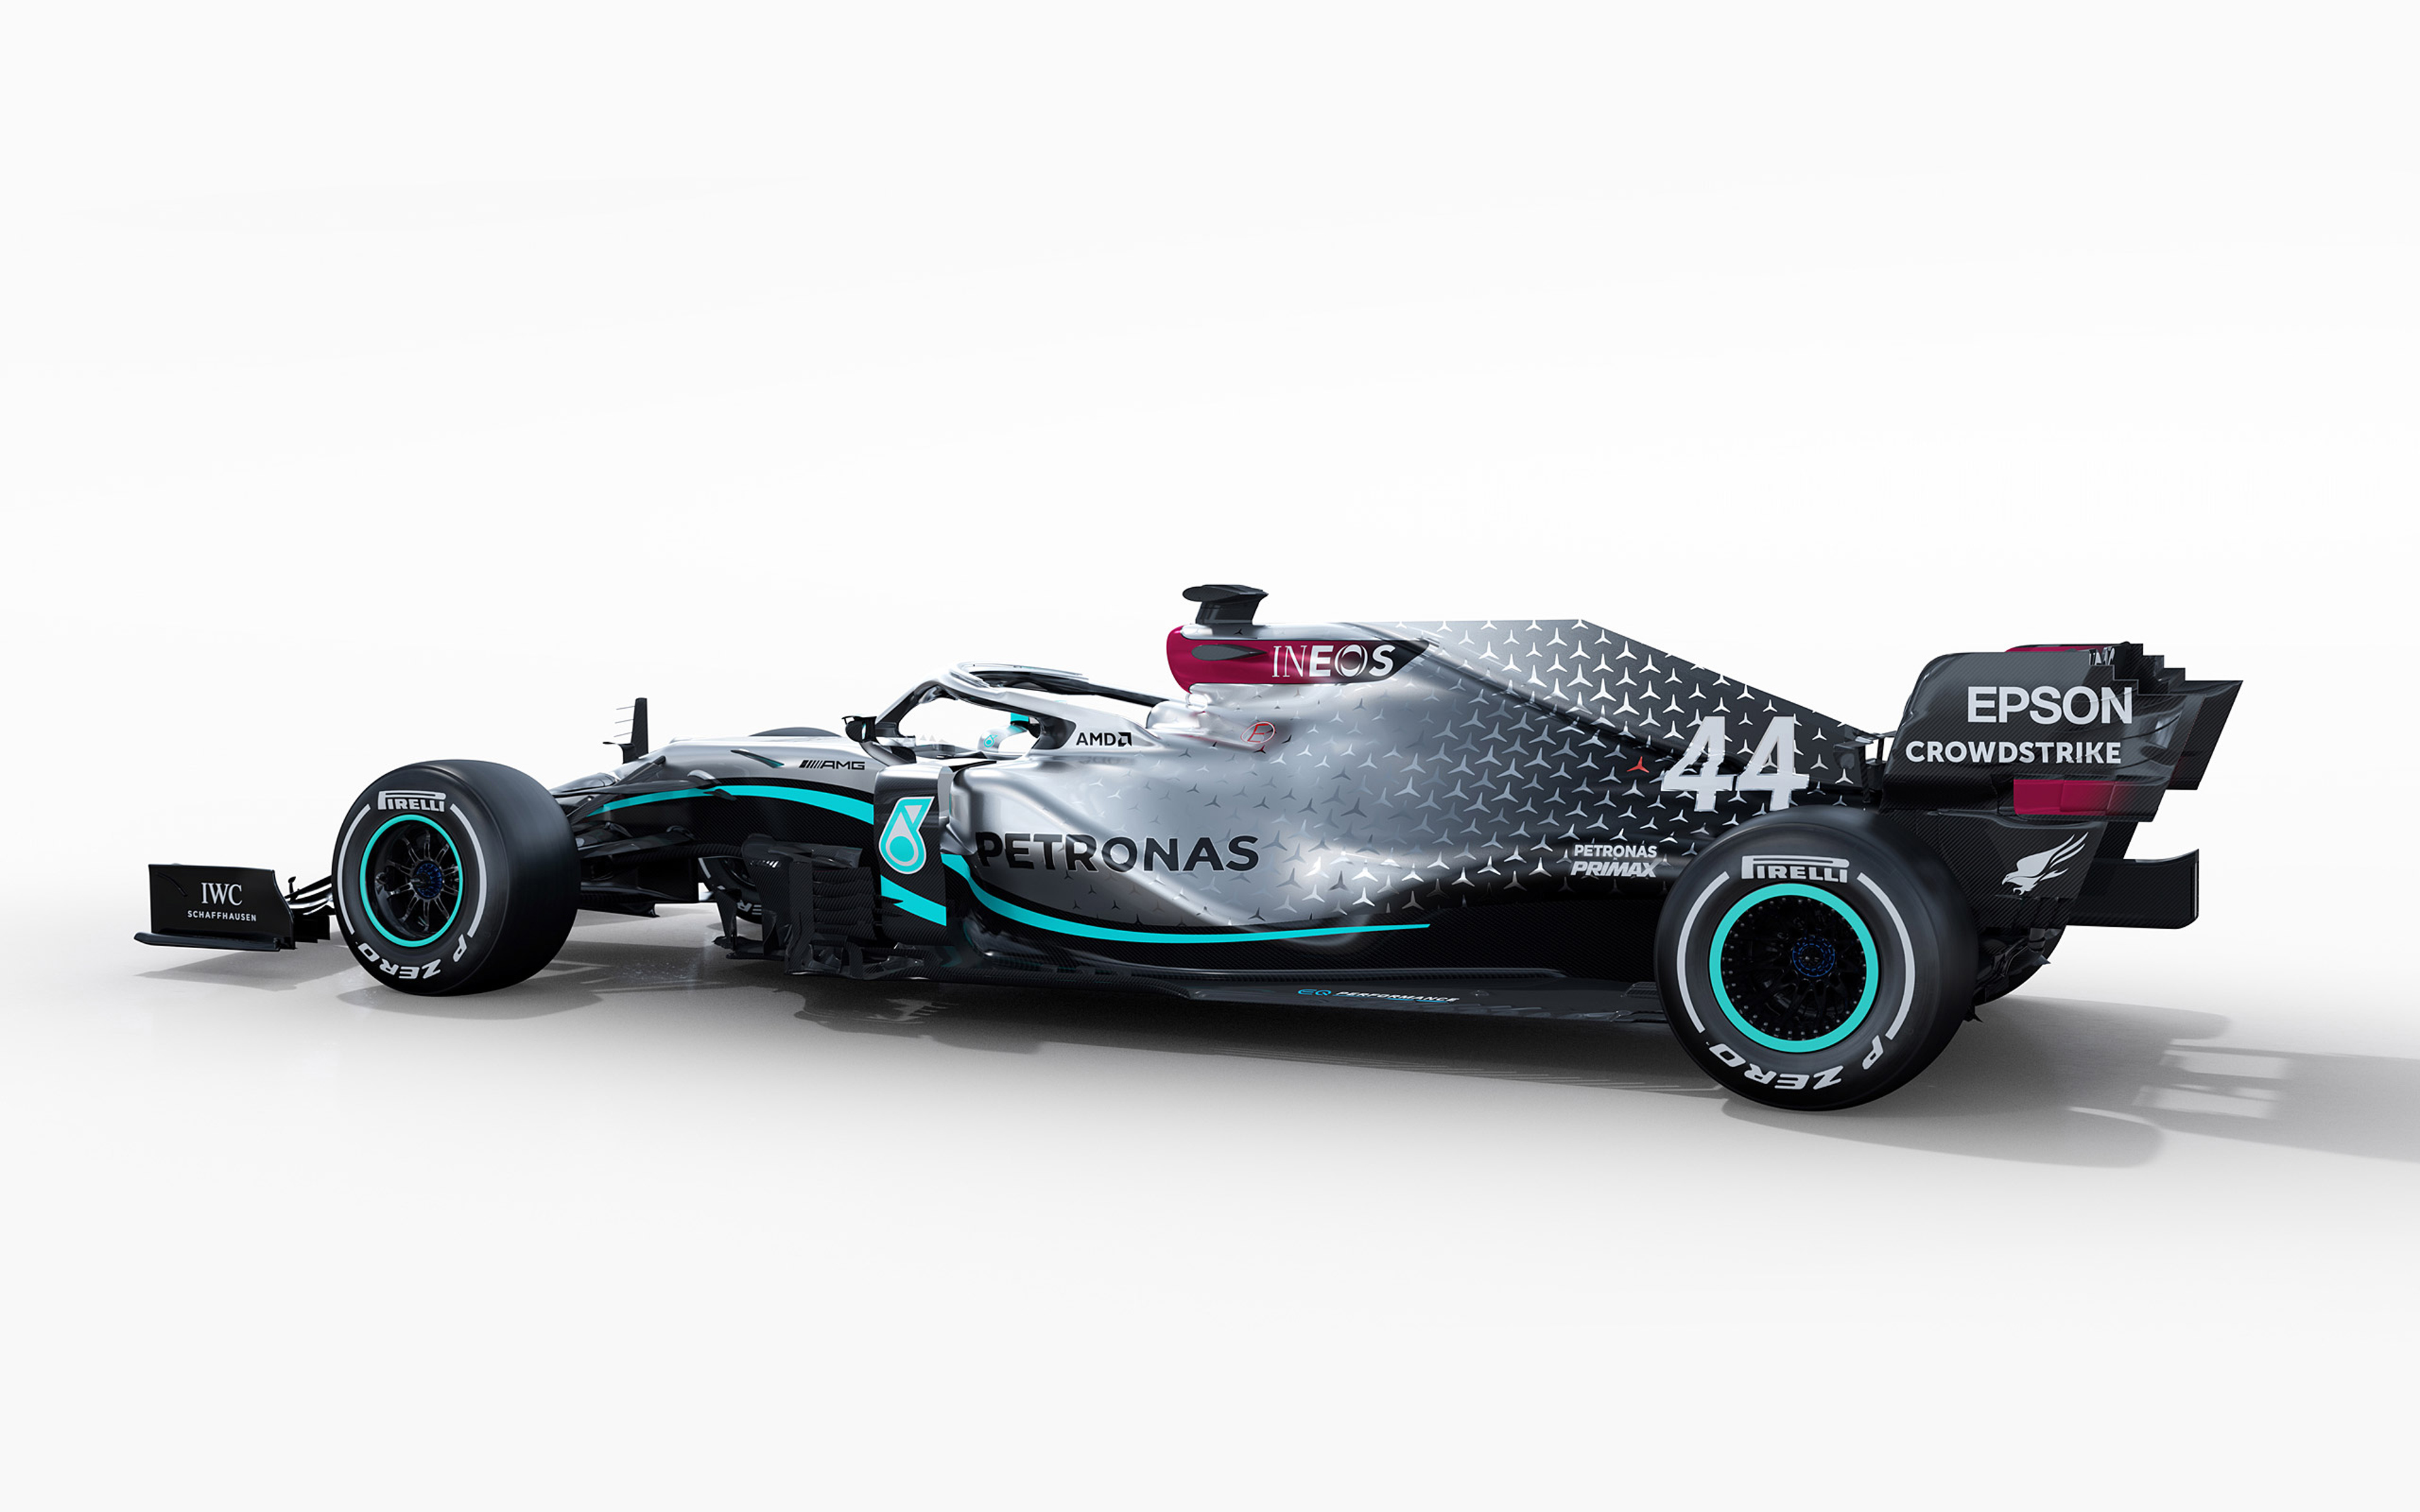 Download wallpapers Mercedes AMG F1 W11 EQ Performance 2020 3840x2400